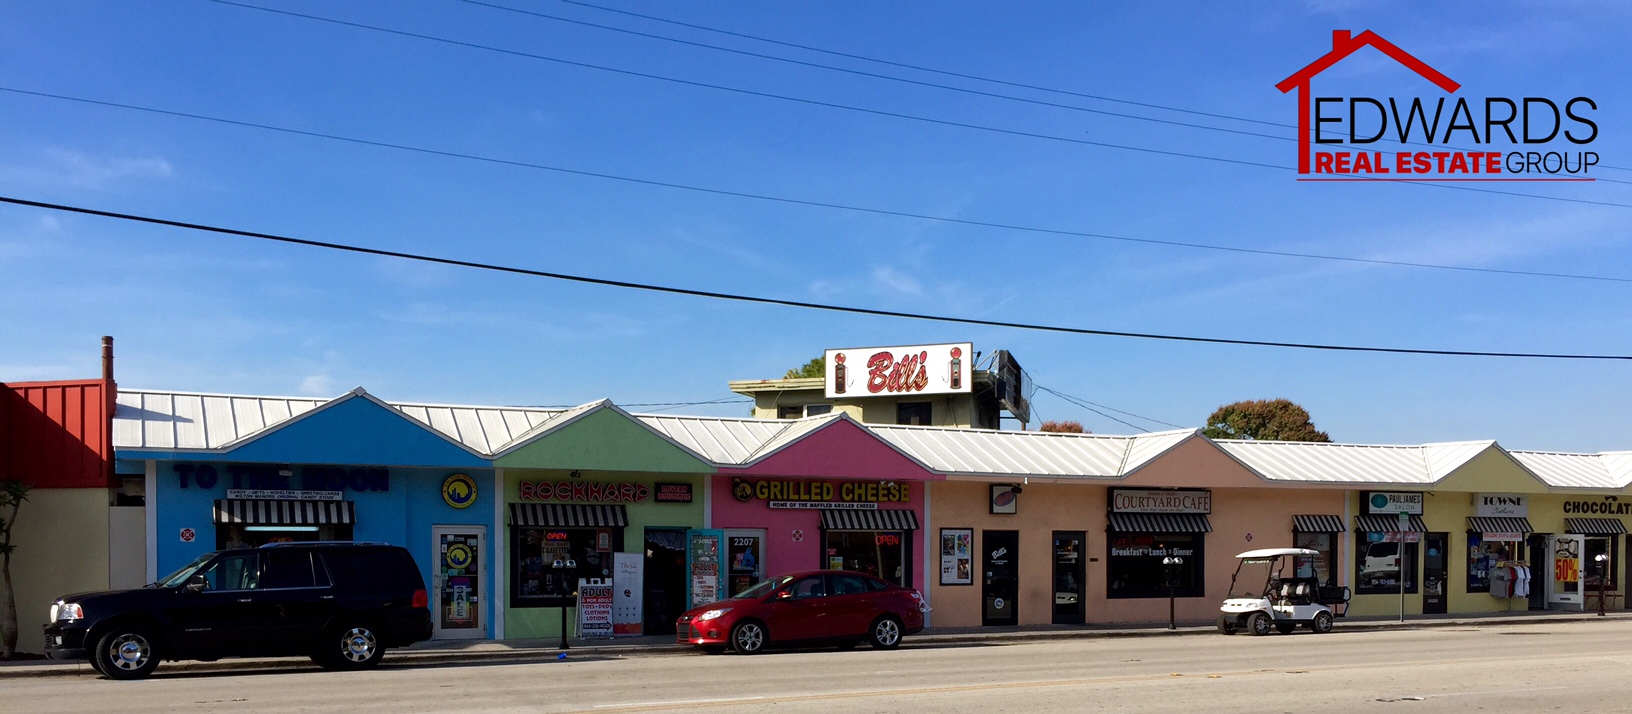 Shops in Wilton Manors - The Edwards Real Estate Group